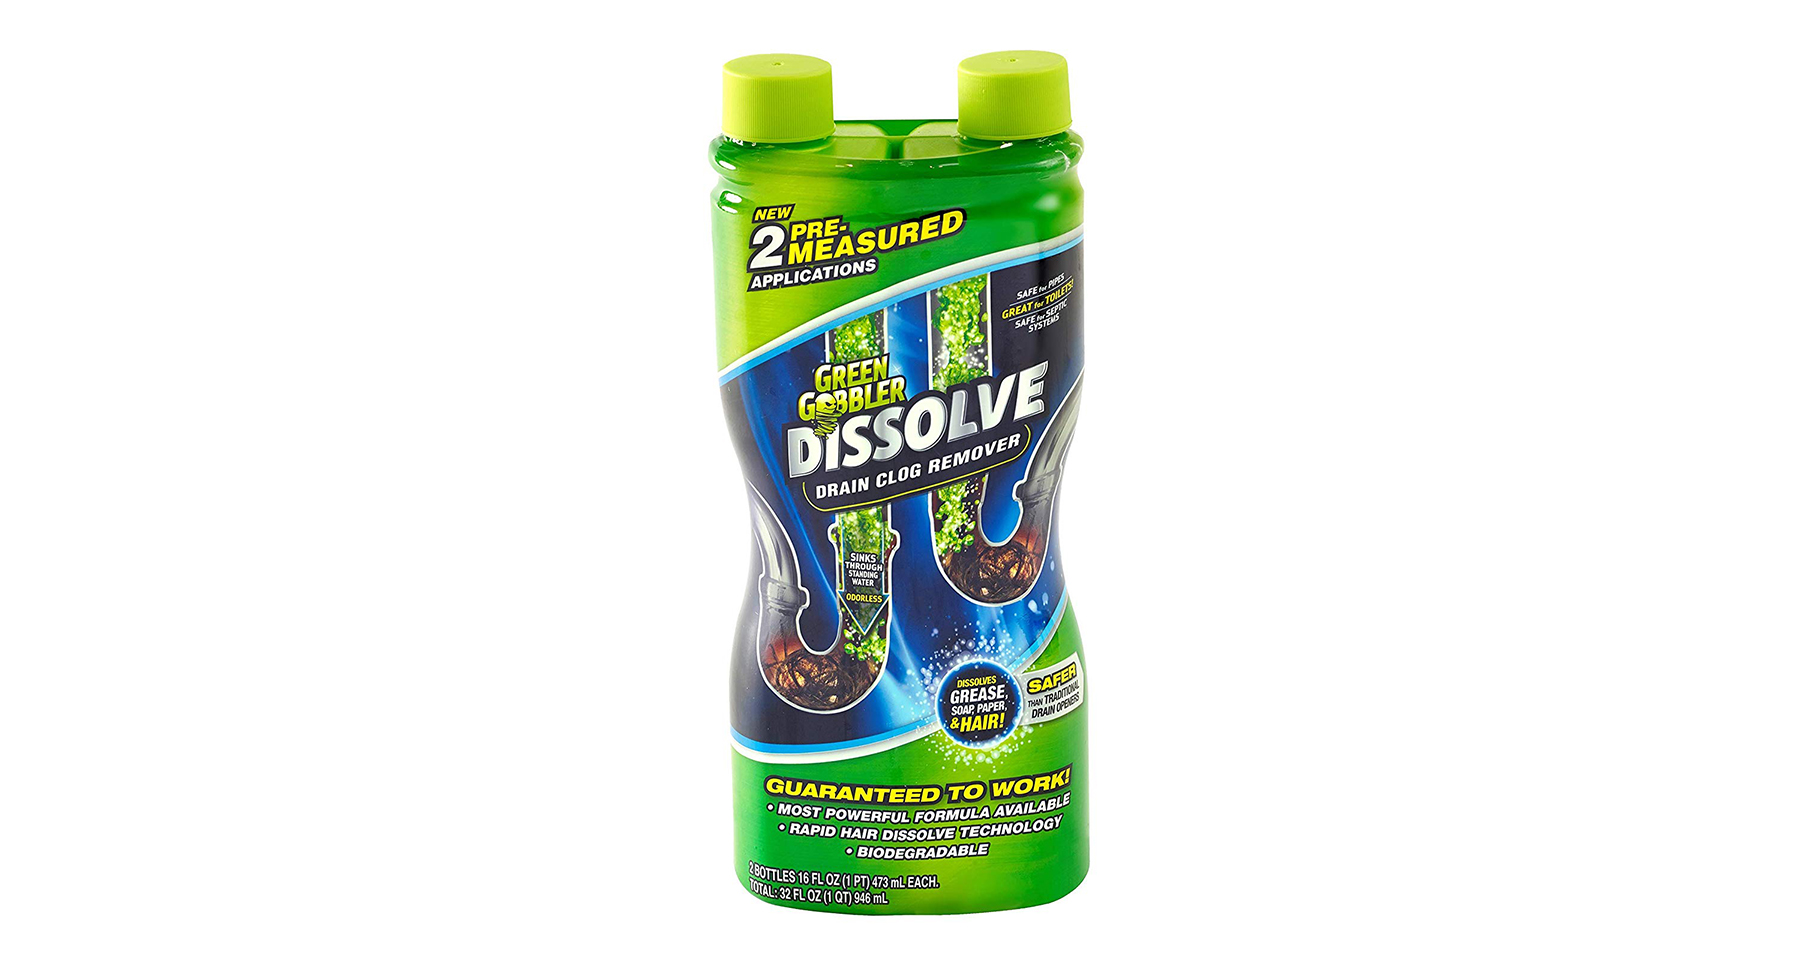 Green Gobbler Dissolve Liquid Hair and Grease Clog Remover